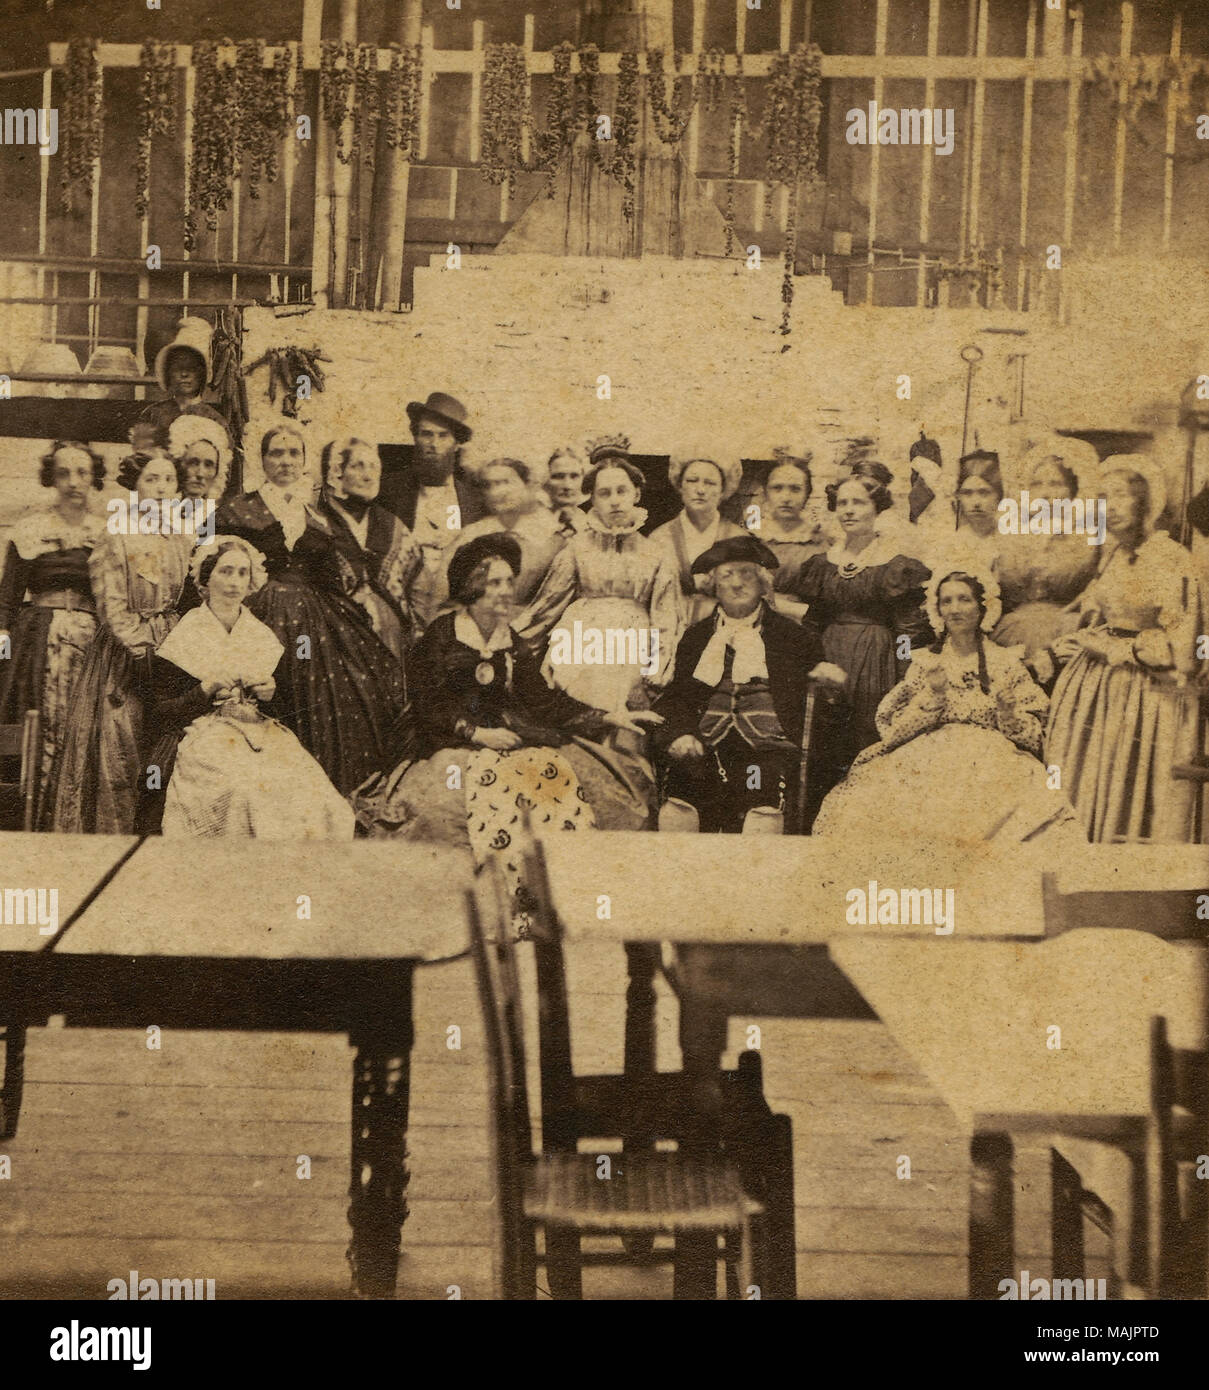 half view stereograph of a group of people in the background and a